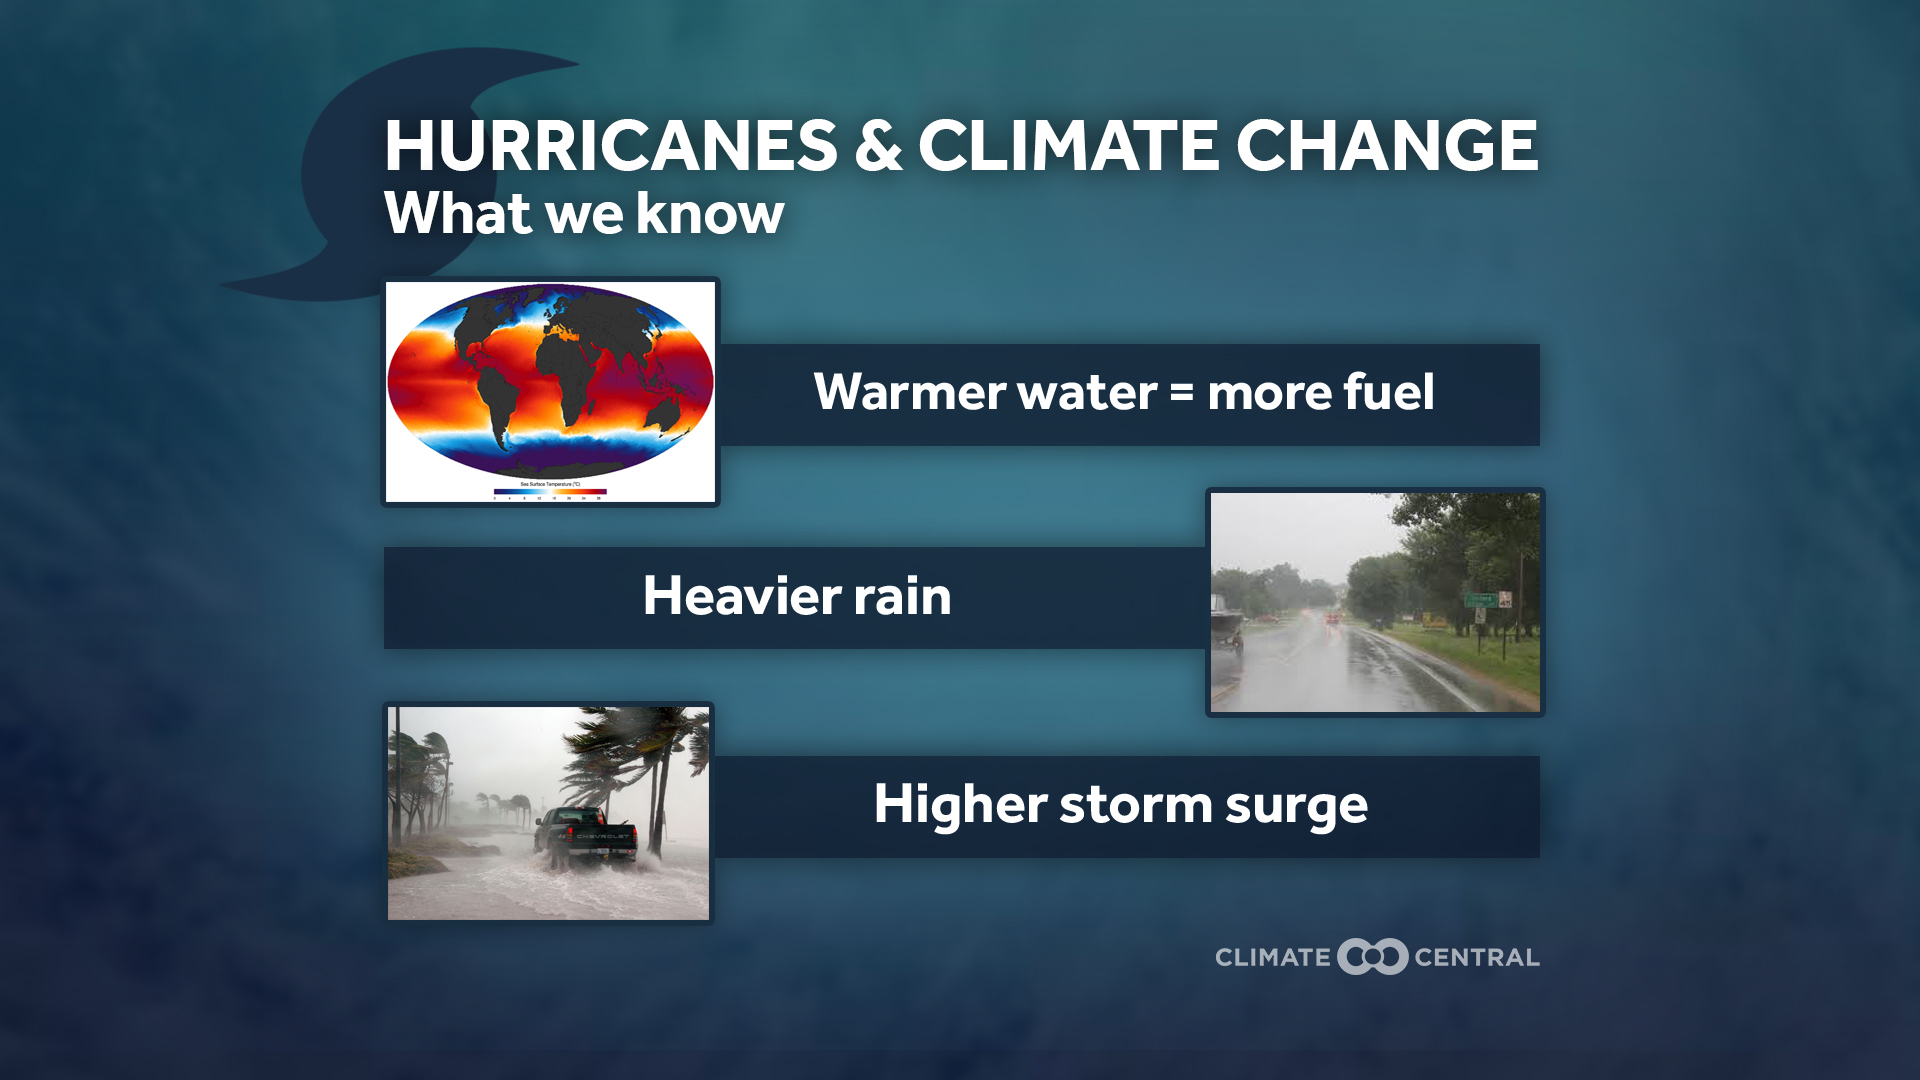 Hurricanes & Climate Change